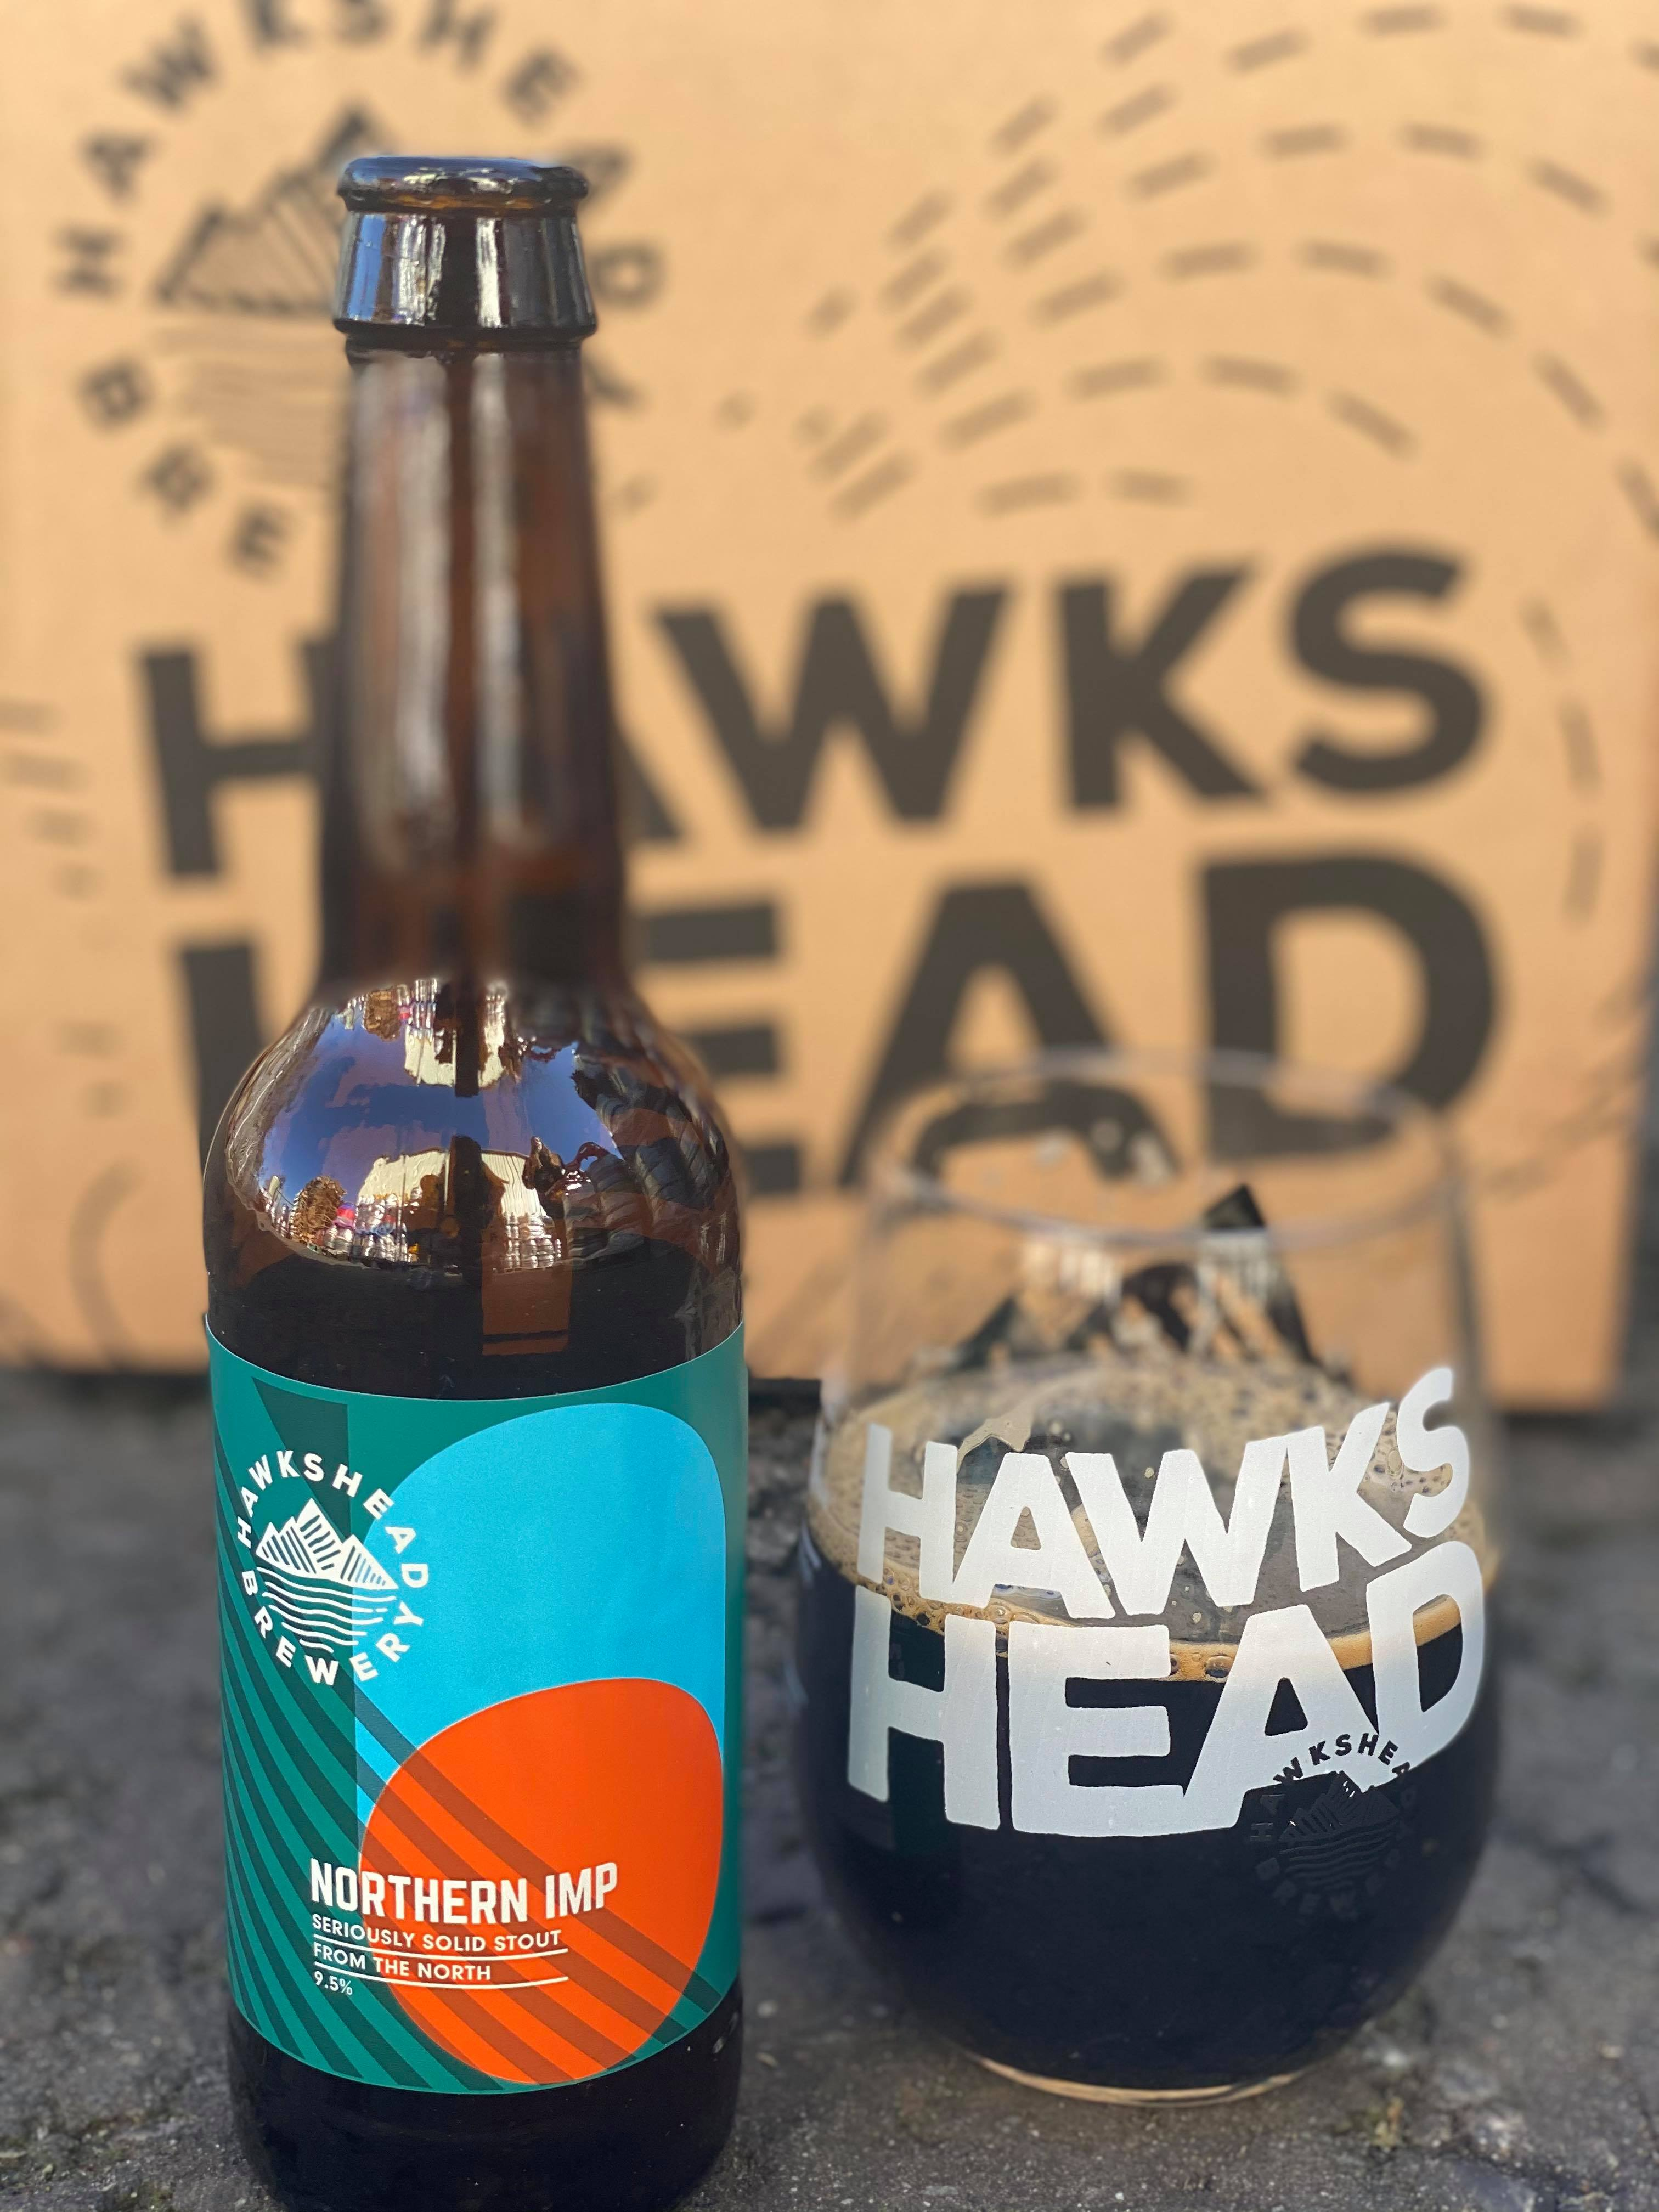 LIMITED EDITION HAWKSHEAD NORTHERN IMPERIAL STOUT 12 BOTTLE CASE